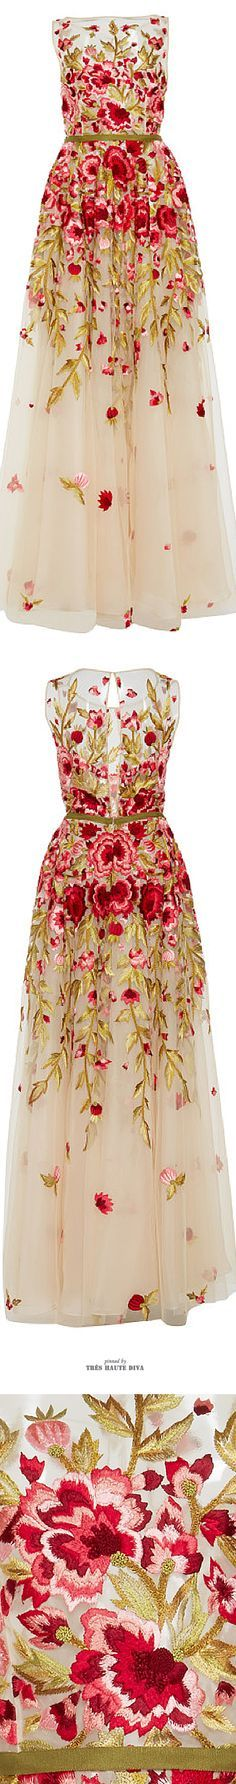 Floral Embroidered Sleeveless Gown